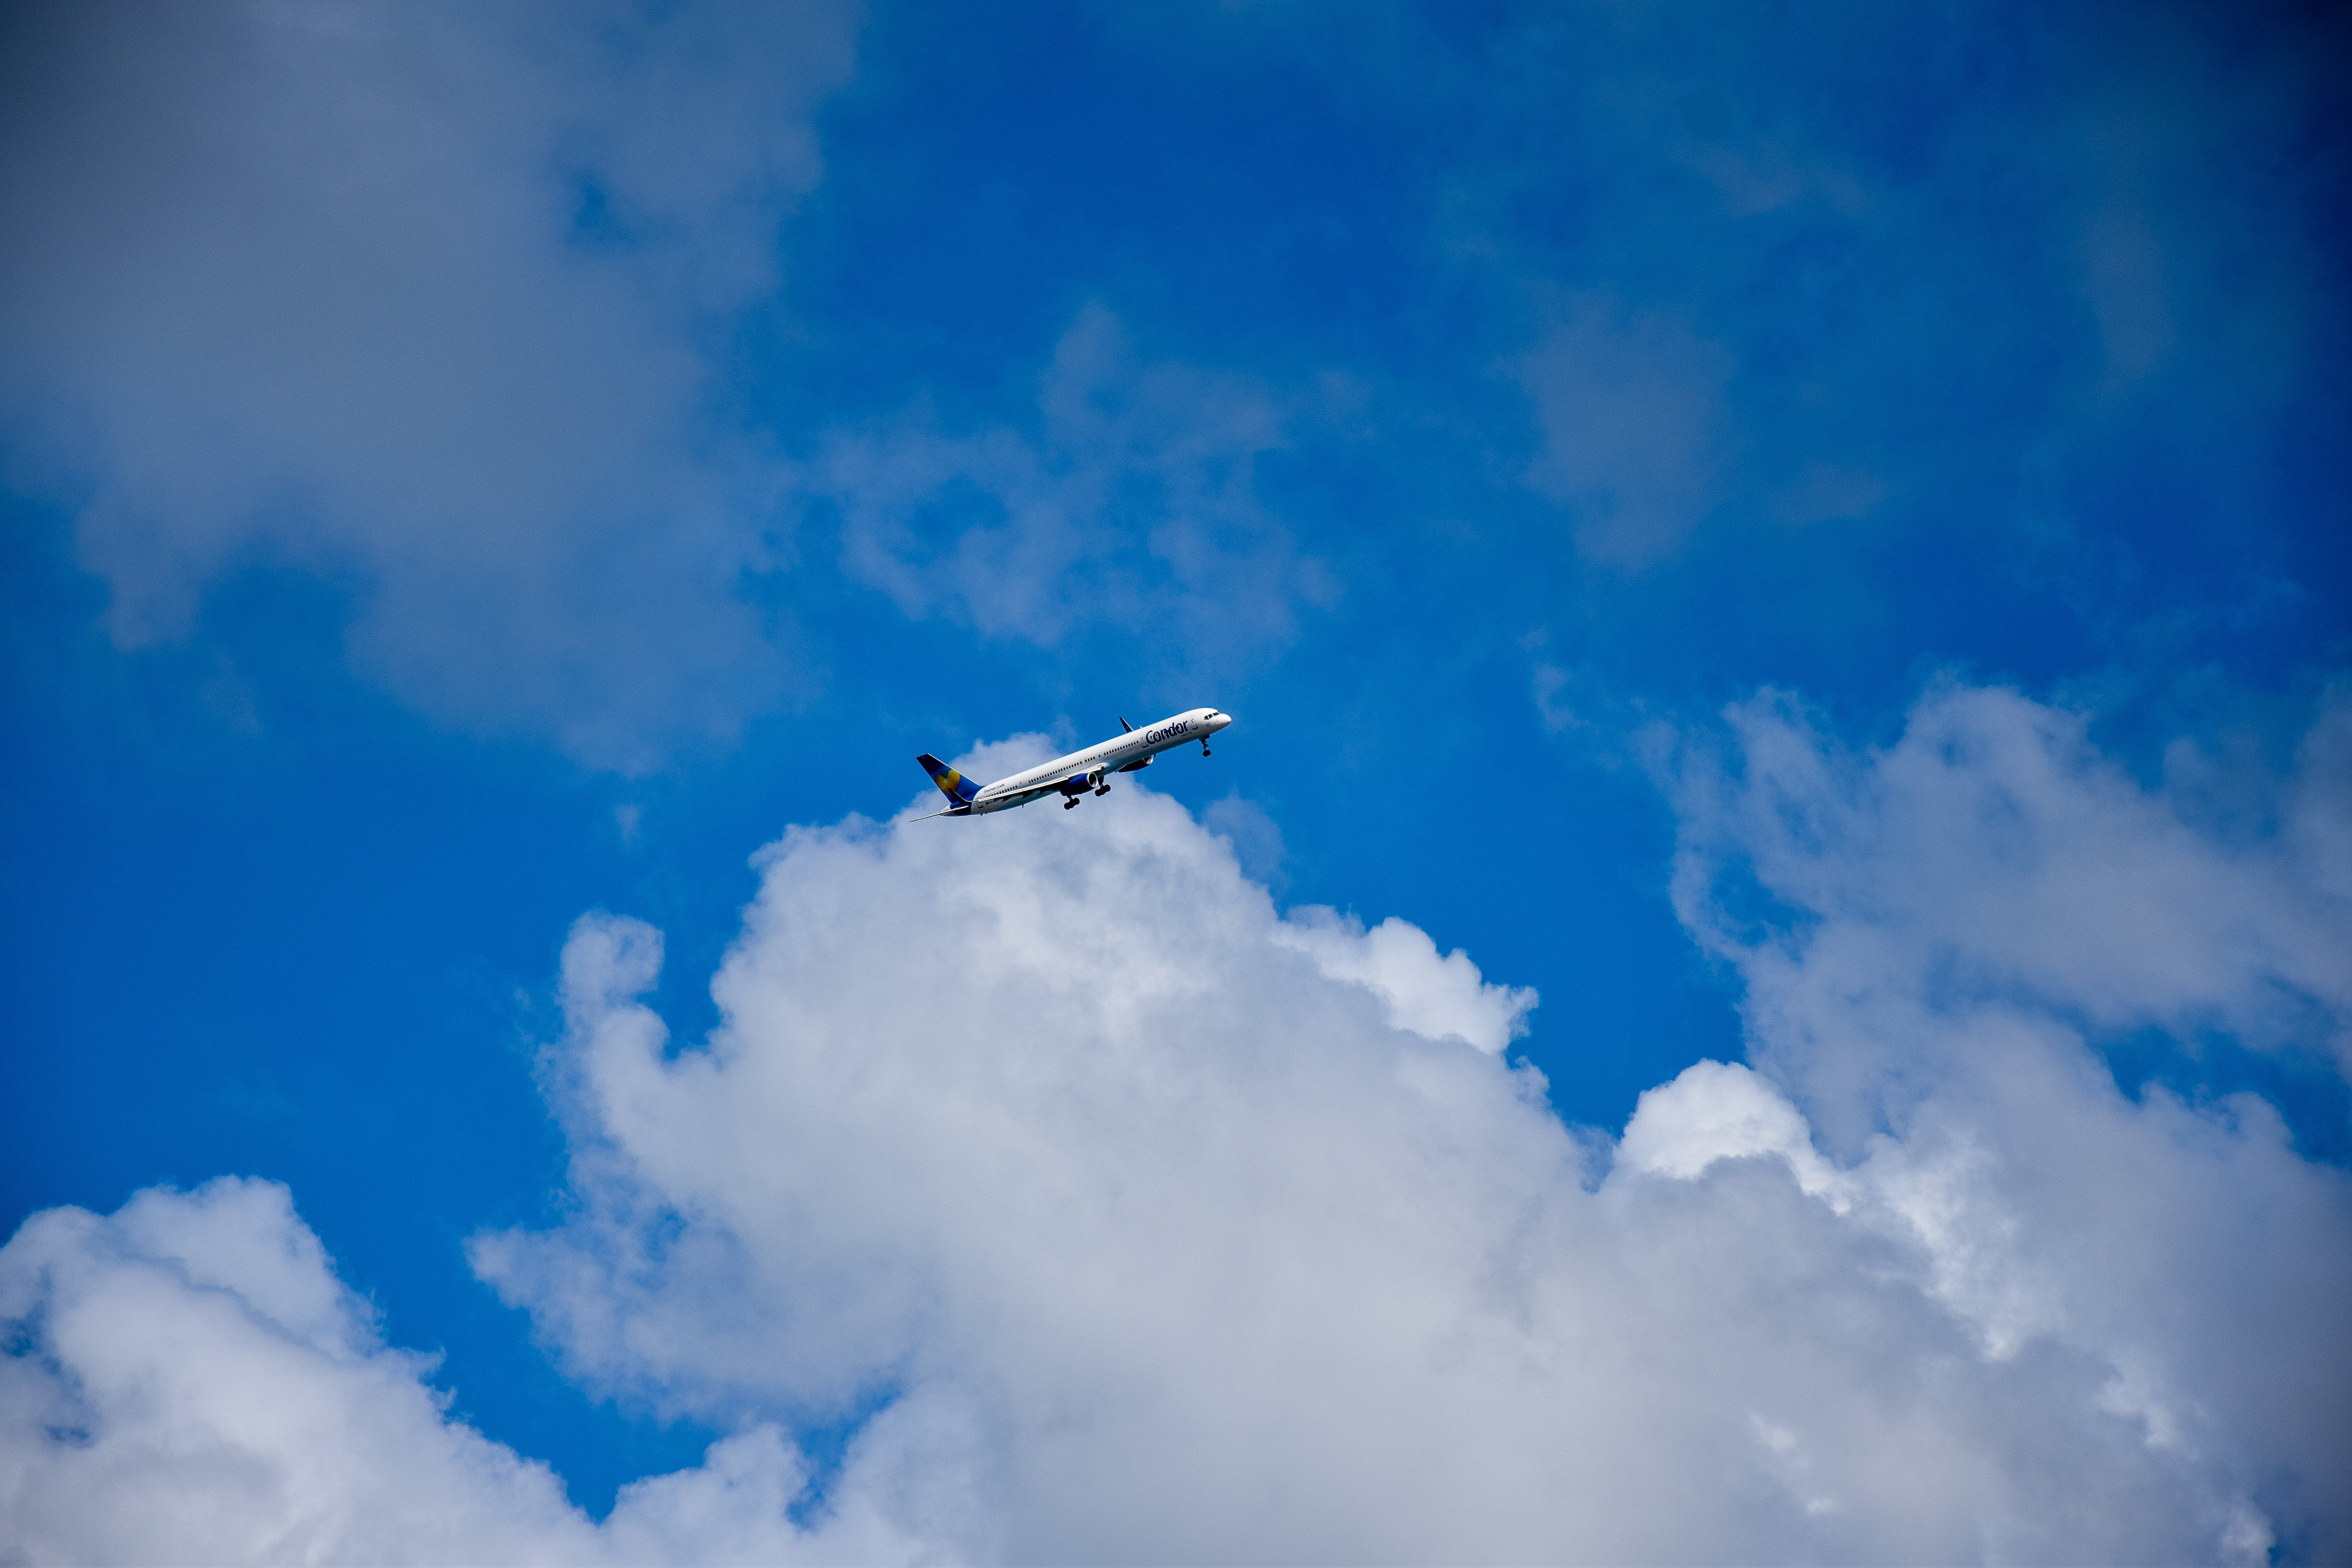 Free stock photo of airplane, blue sky, clouds, plane